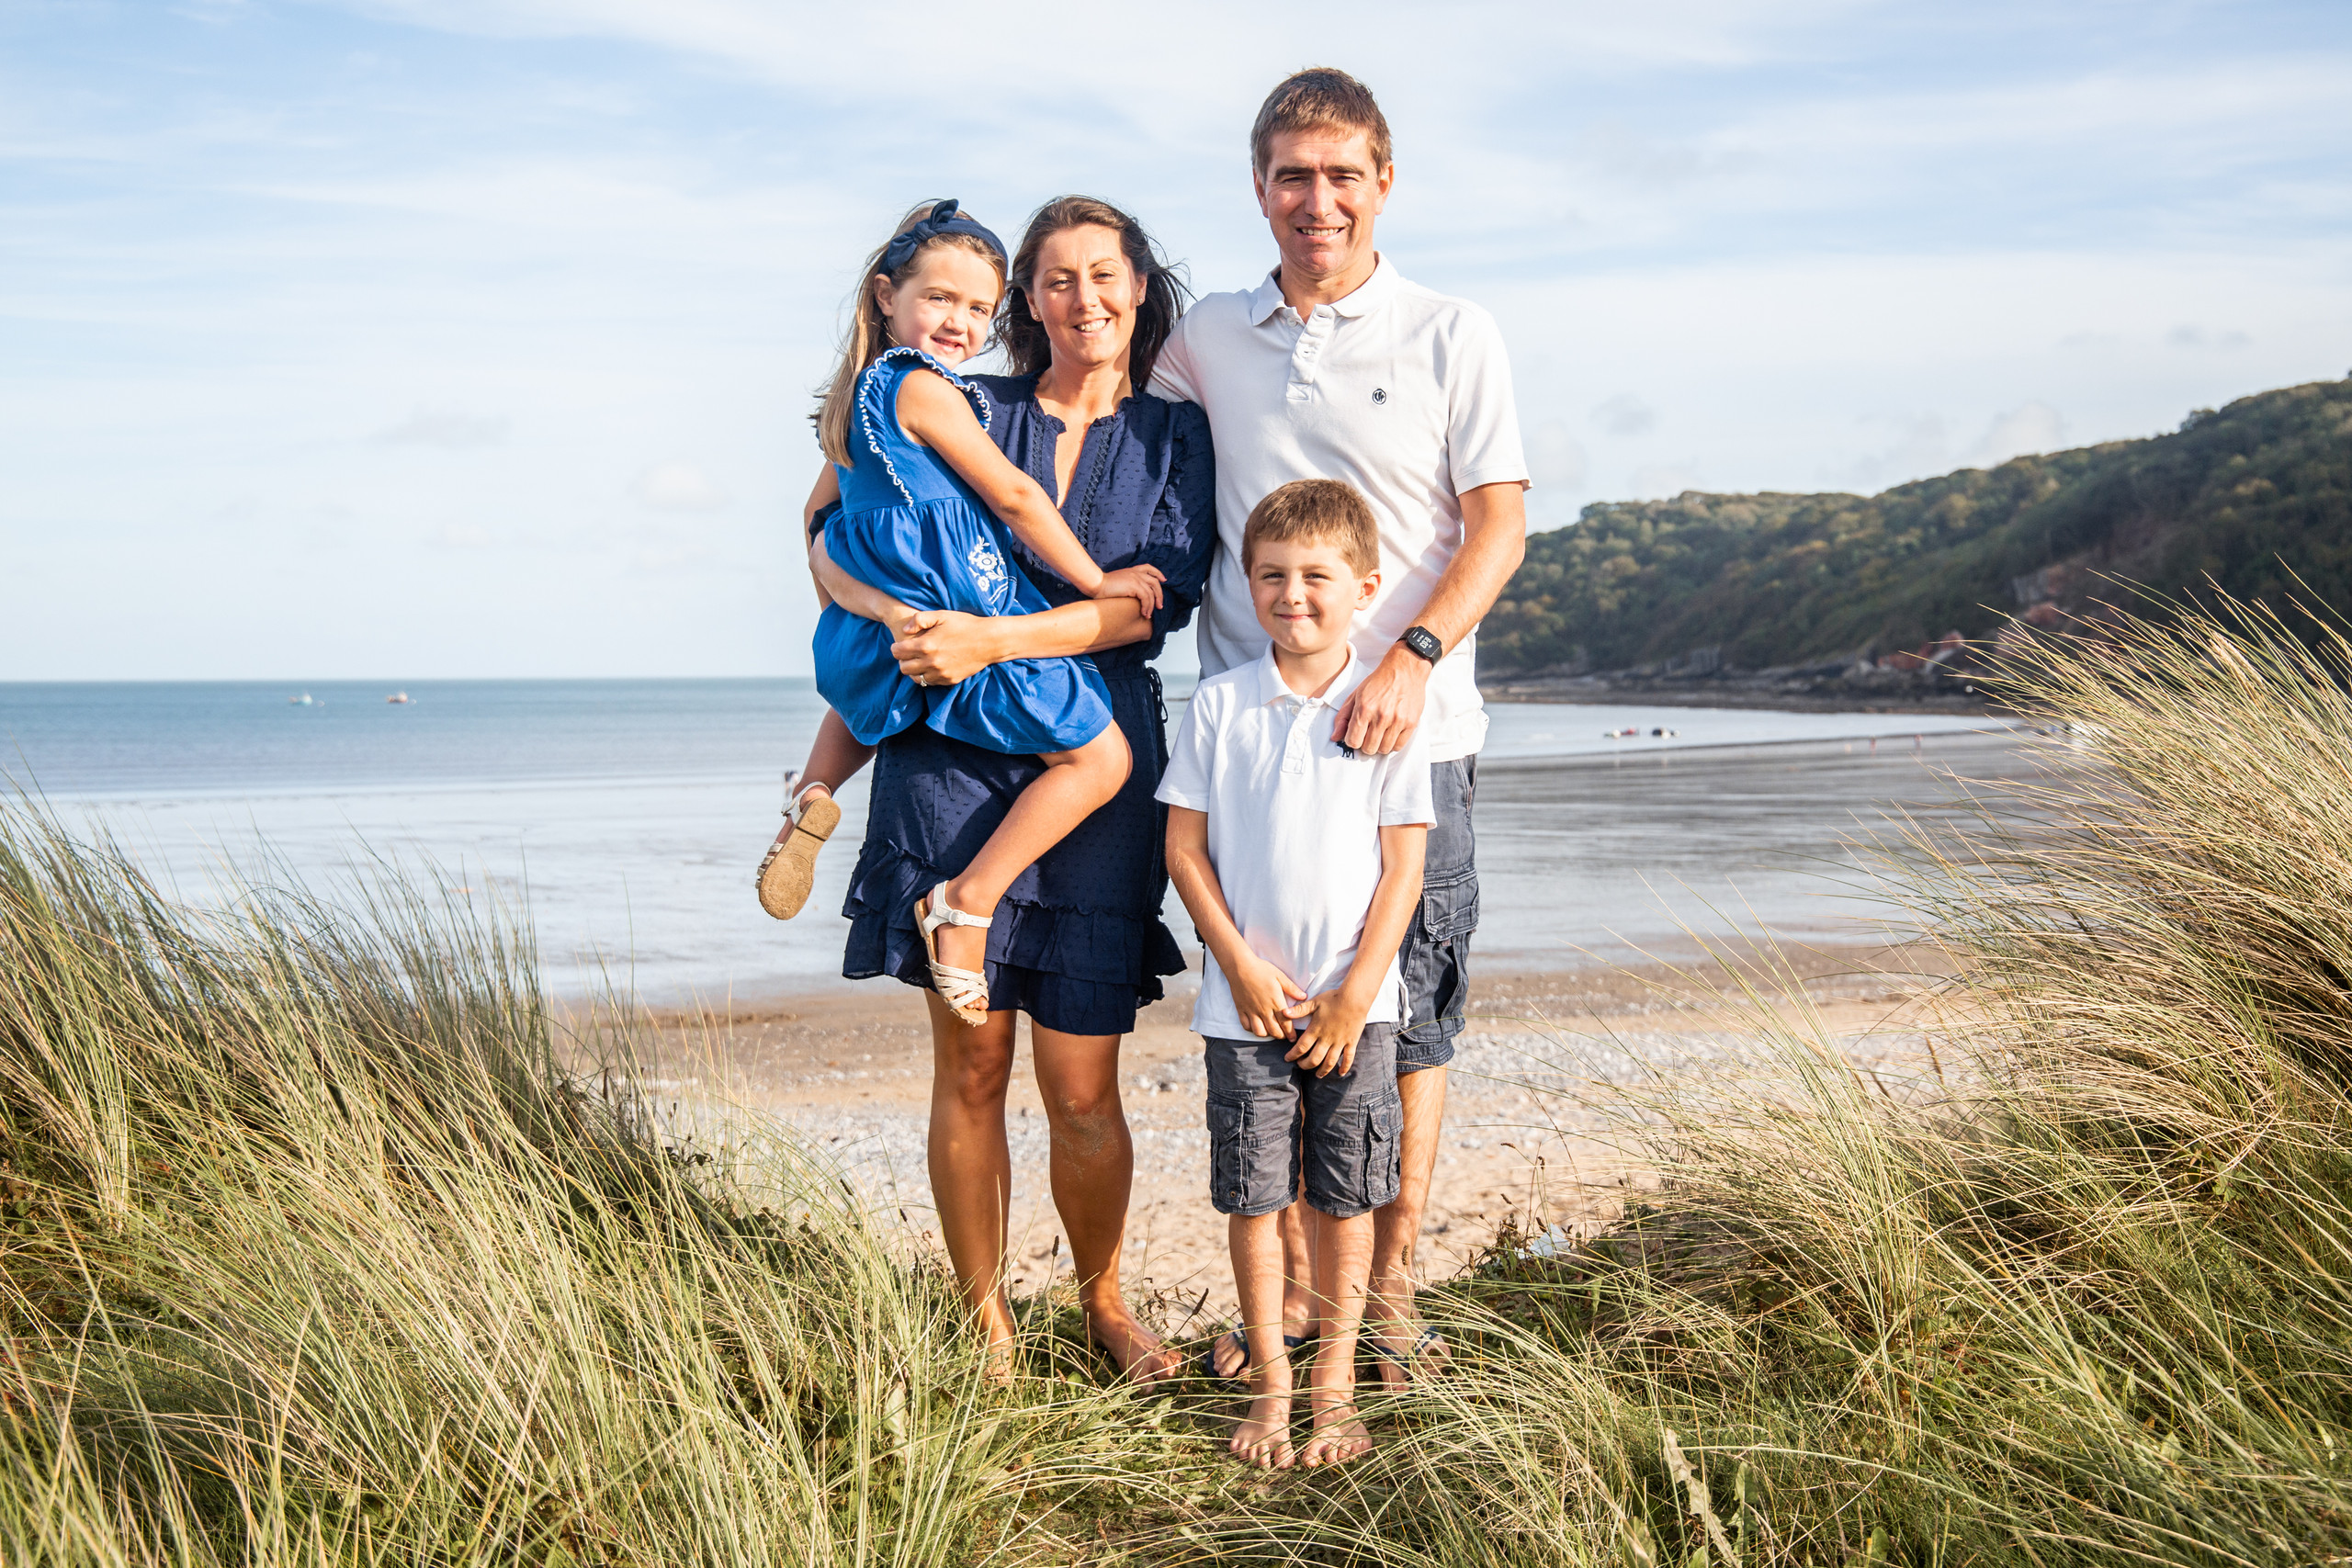 oxwich bay family photography session by the hotel